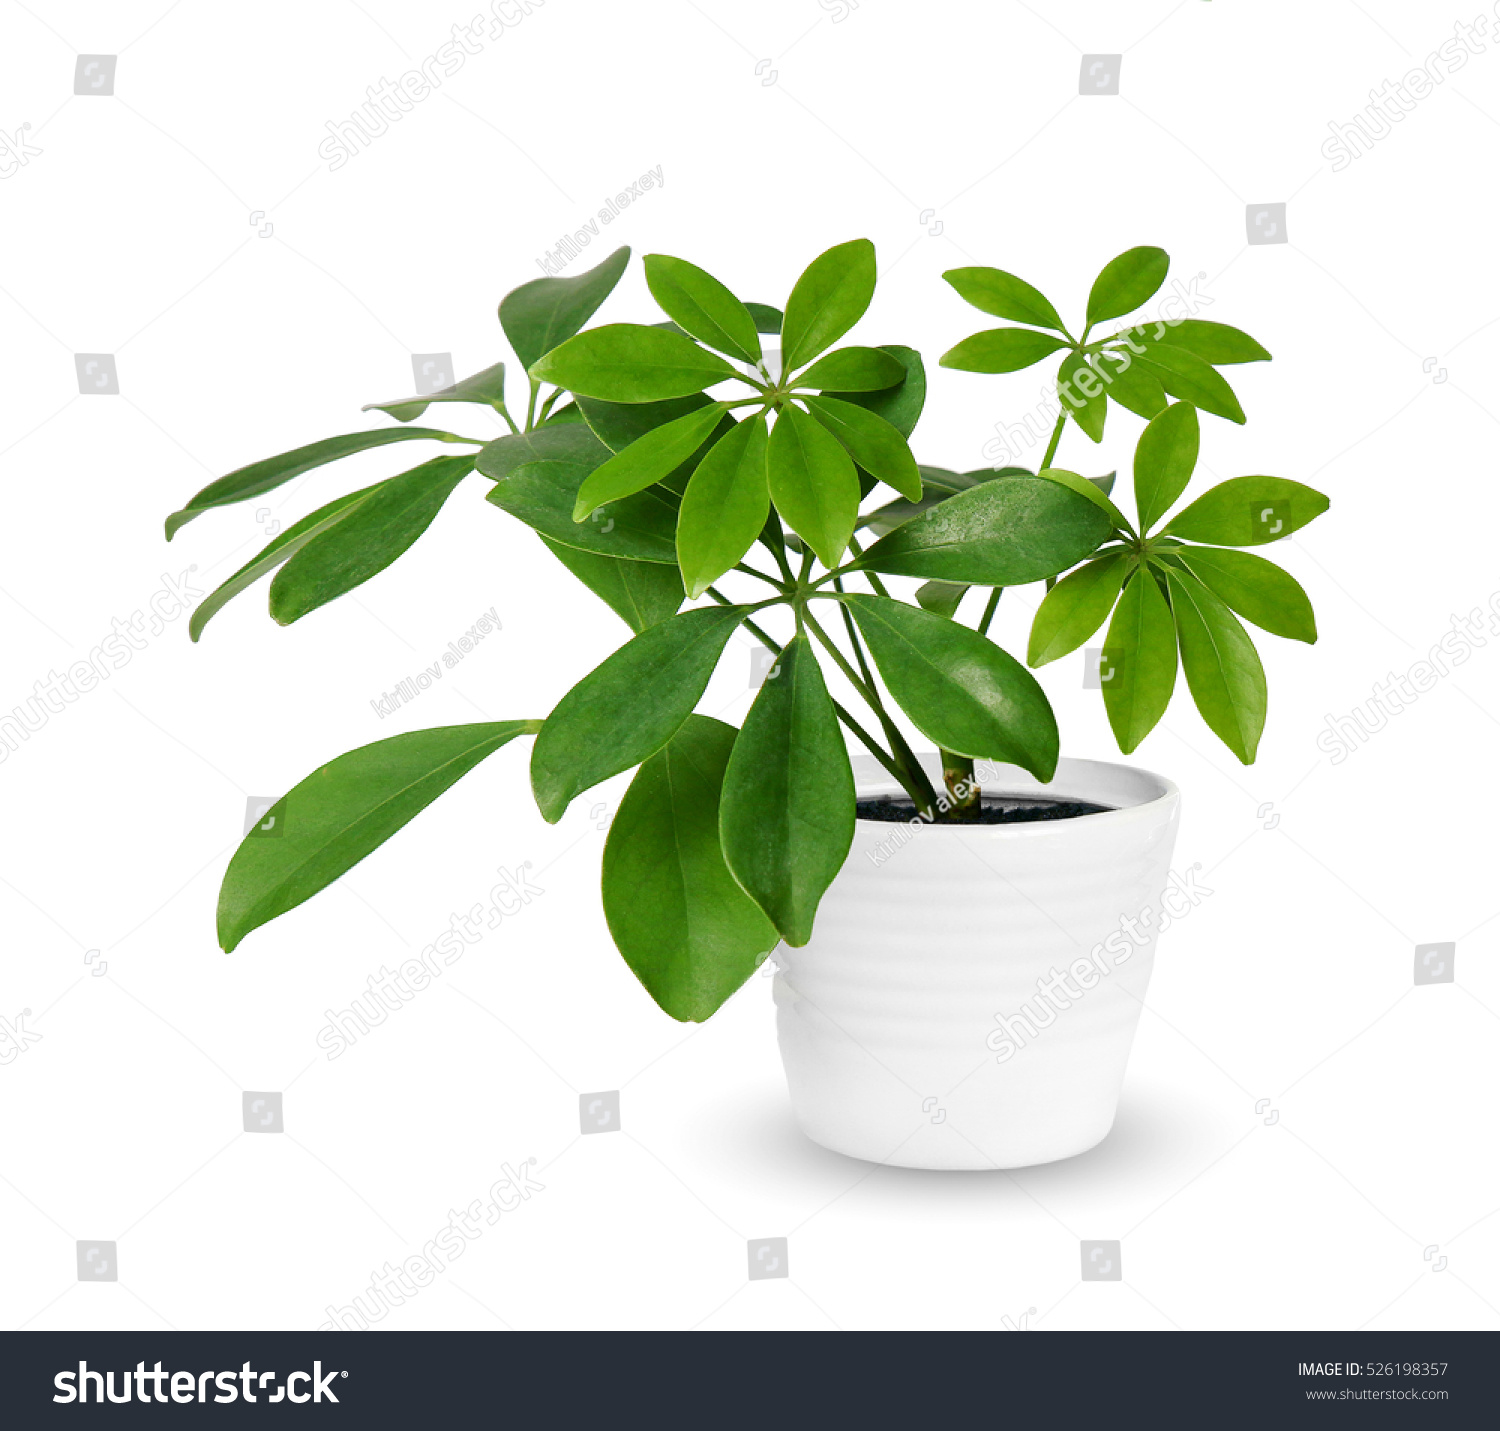 young Schefflera a potted plant isolated over white #526198357 - 123PhotoFree.com